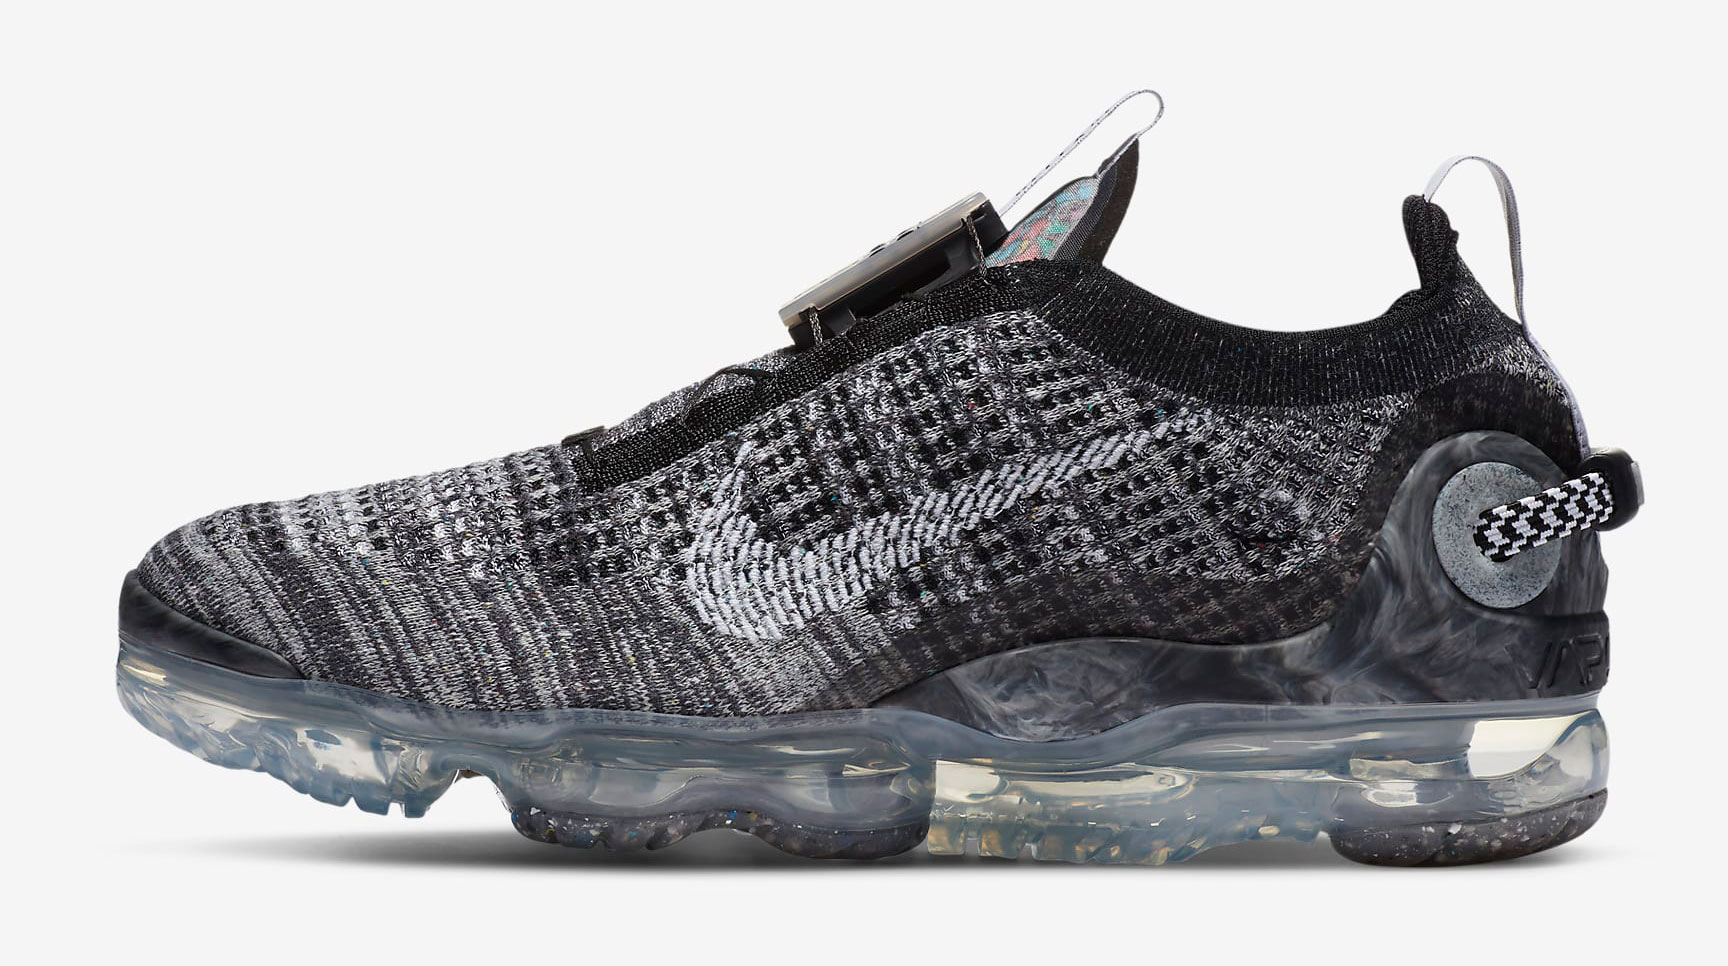 nike-air-vapormax-flyknit-2020-oreo-release-date-price-2